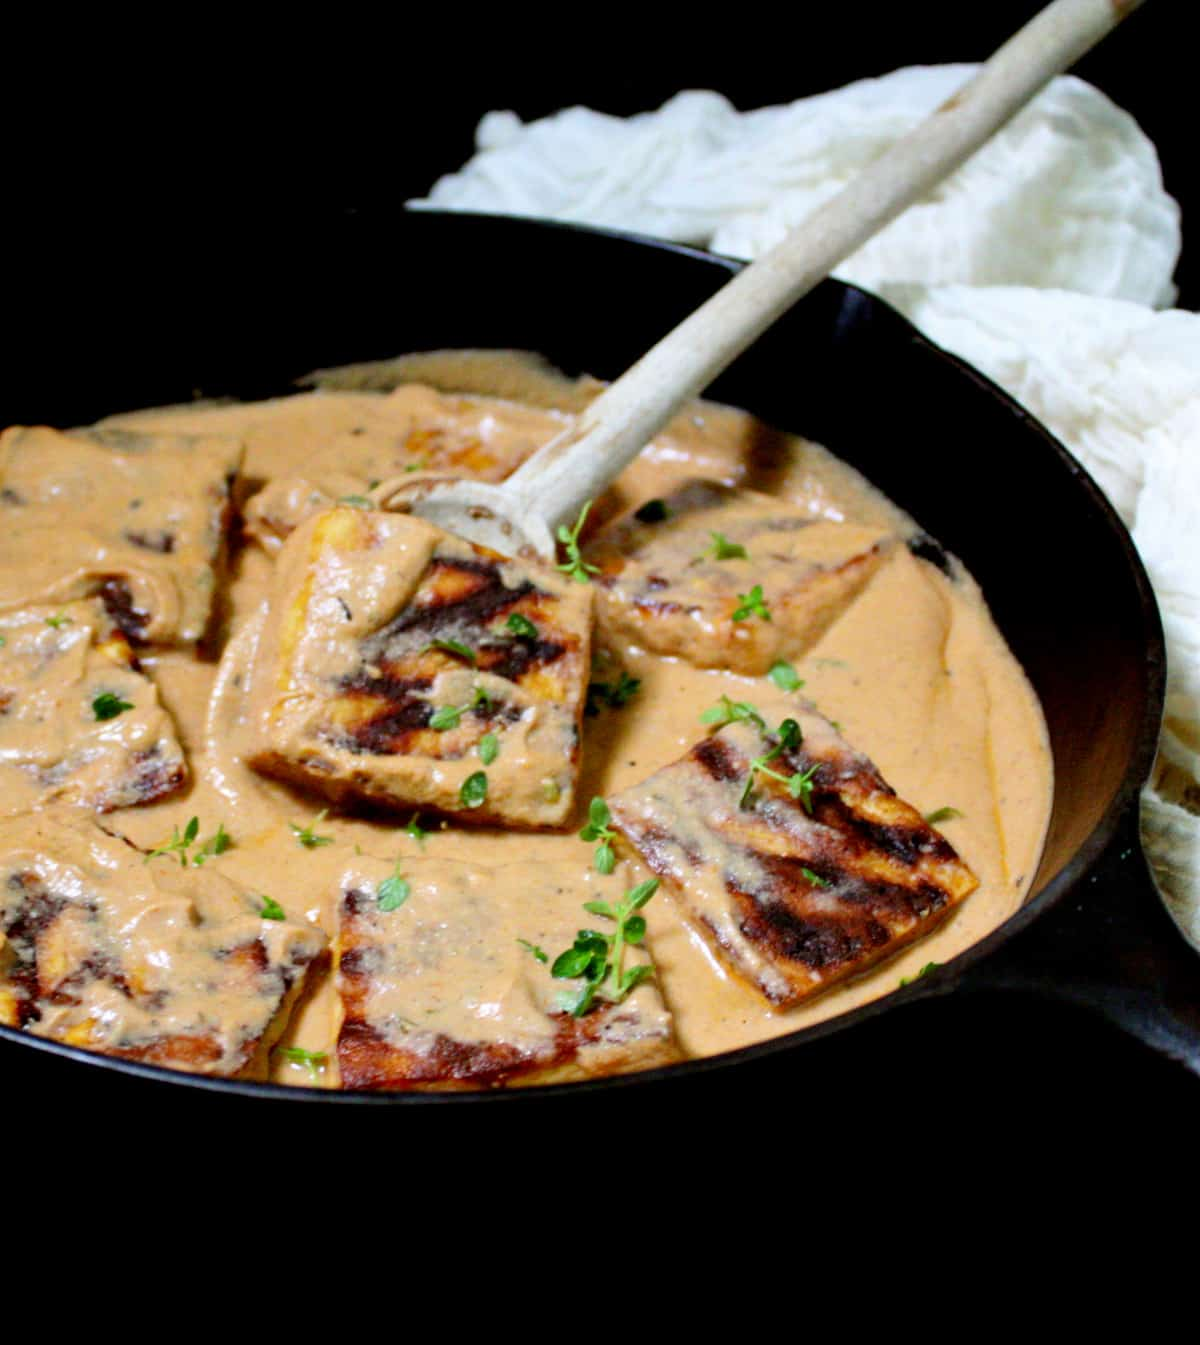 Front shot of grilled tofu steaks with a crosshatch pattern in a creamy orange Cajun sauce with a ladle and  a cheesecloth in background.